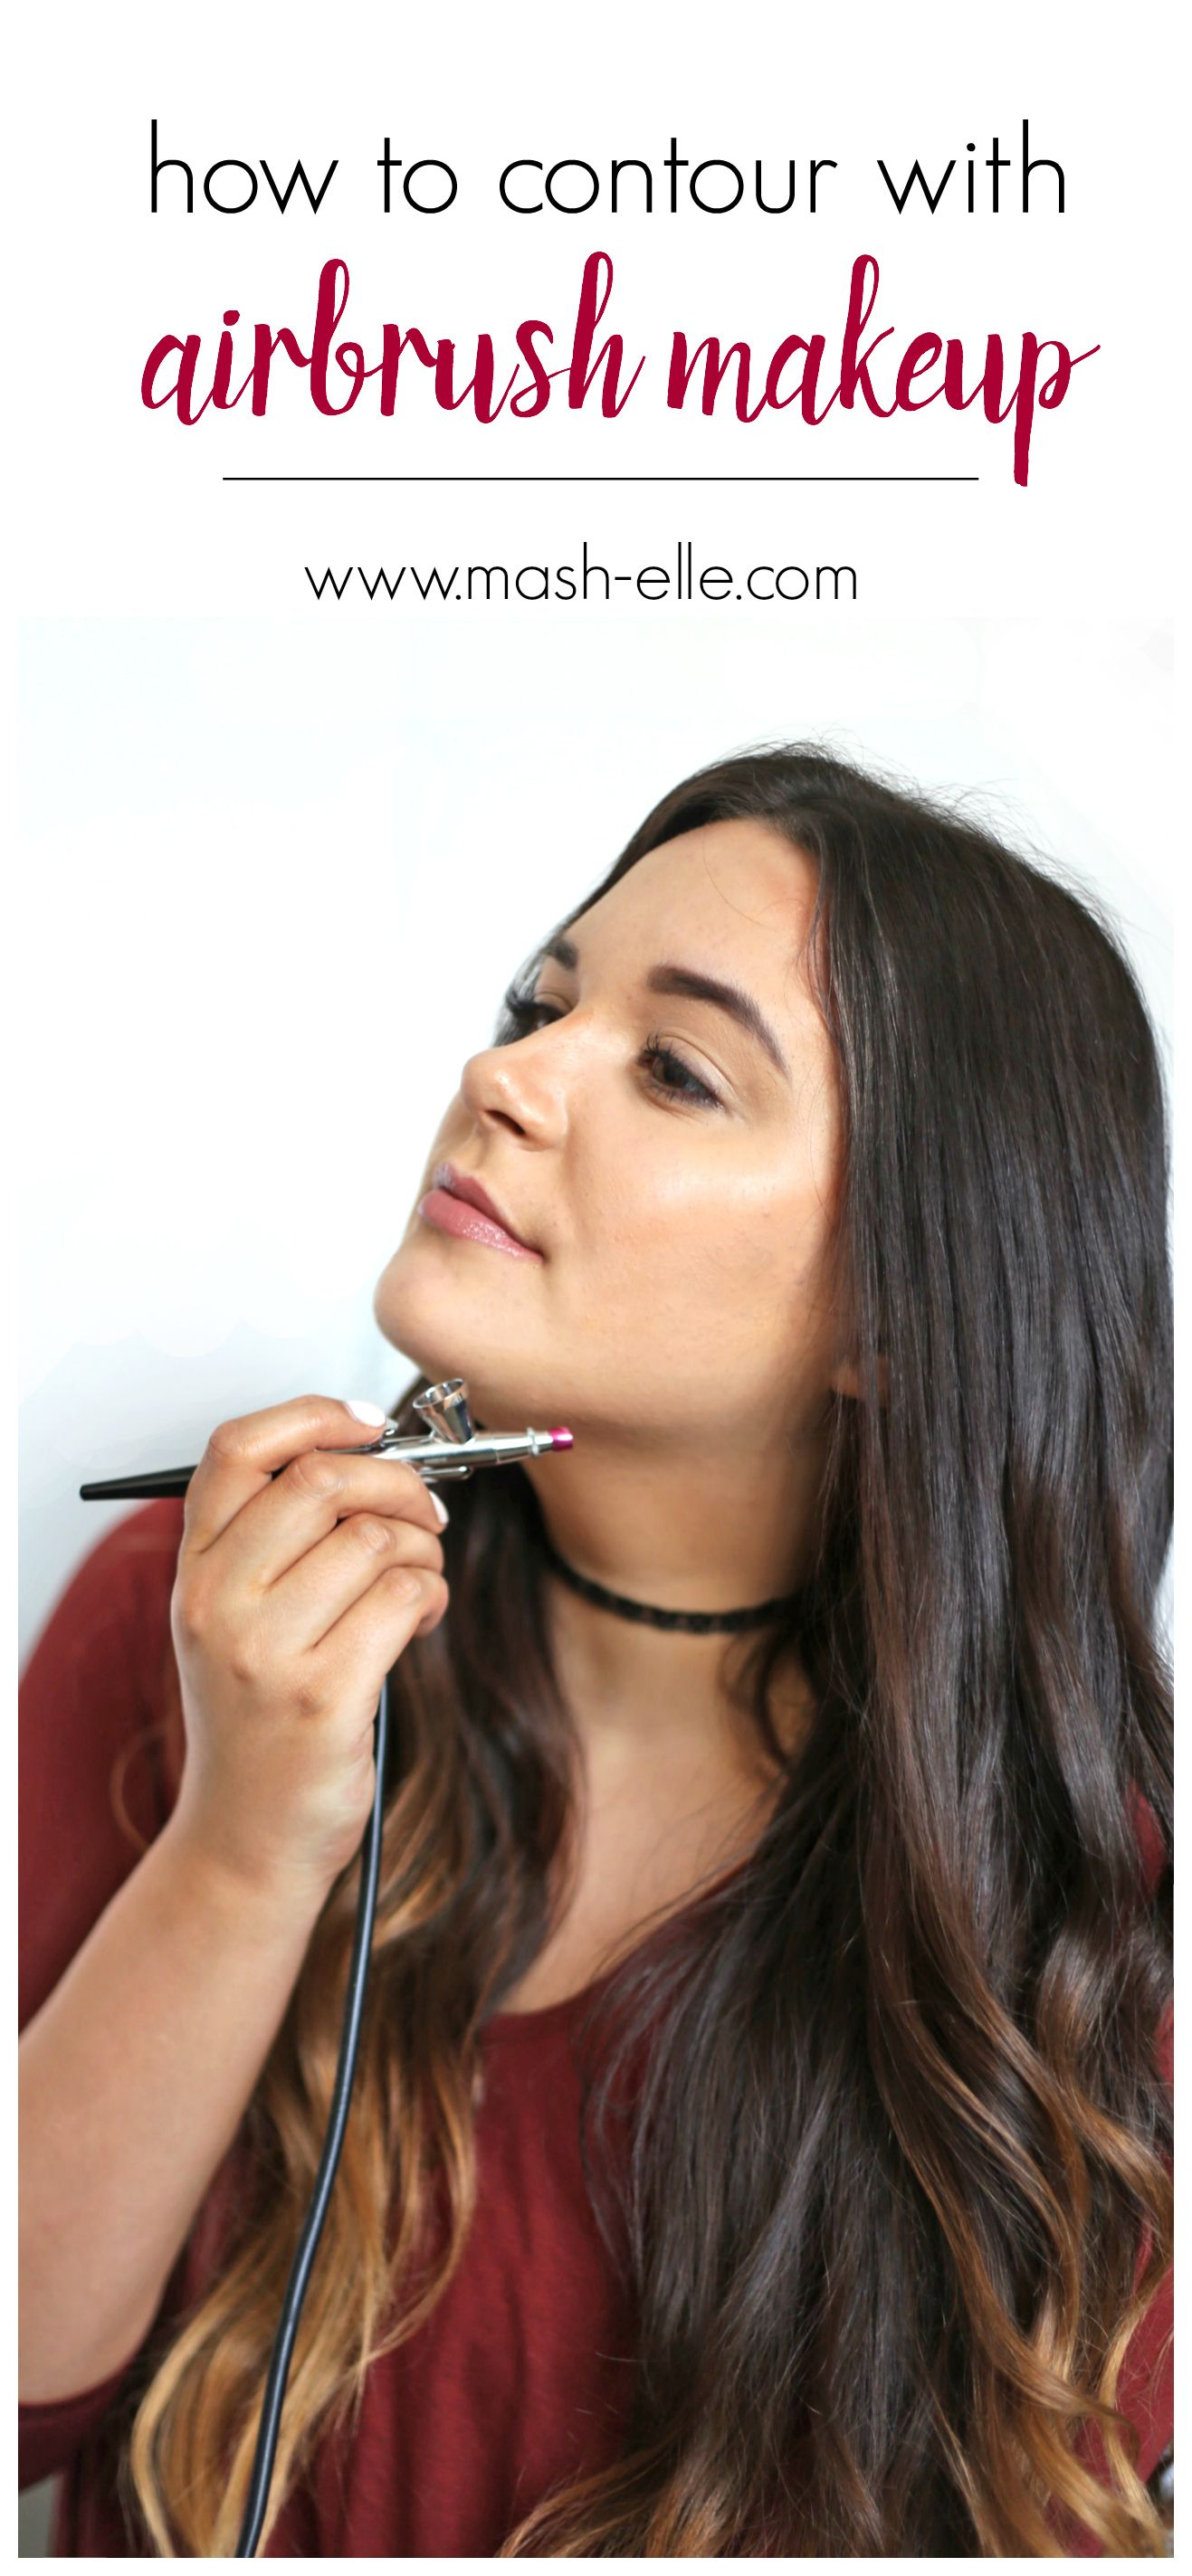 Get a Professional Airbrushed Makeup Look WITHOUT an